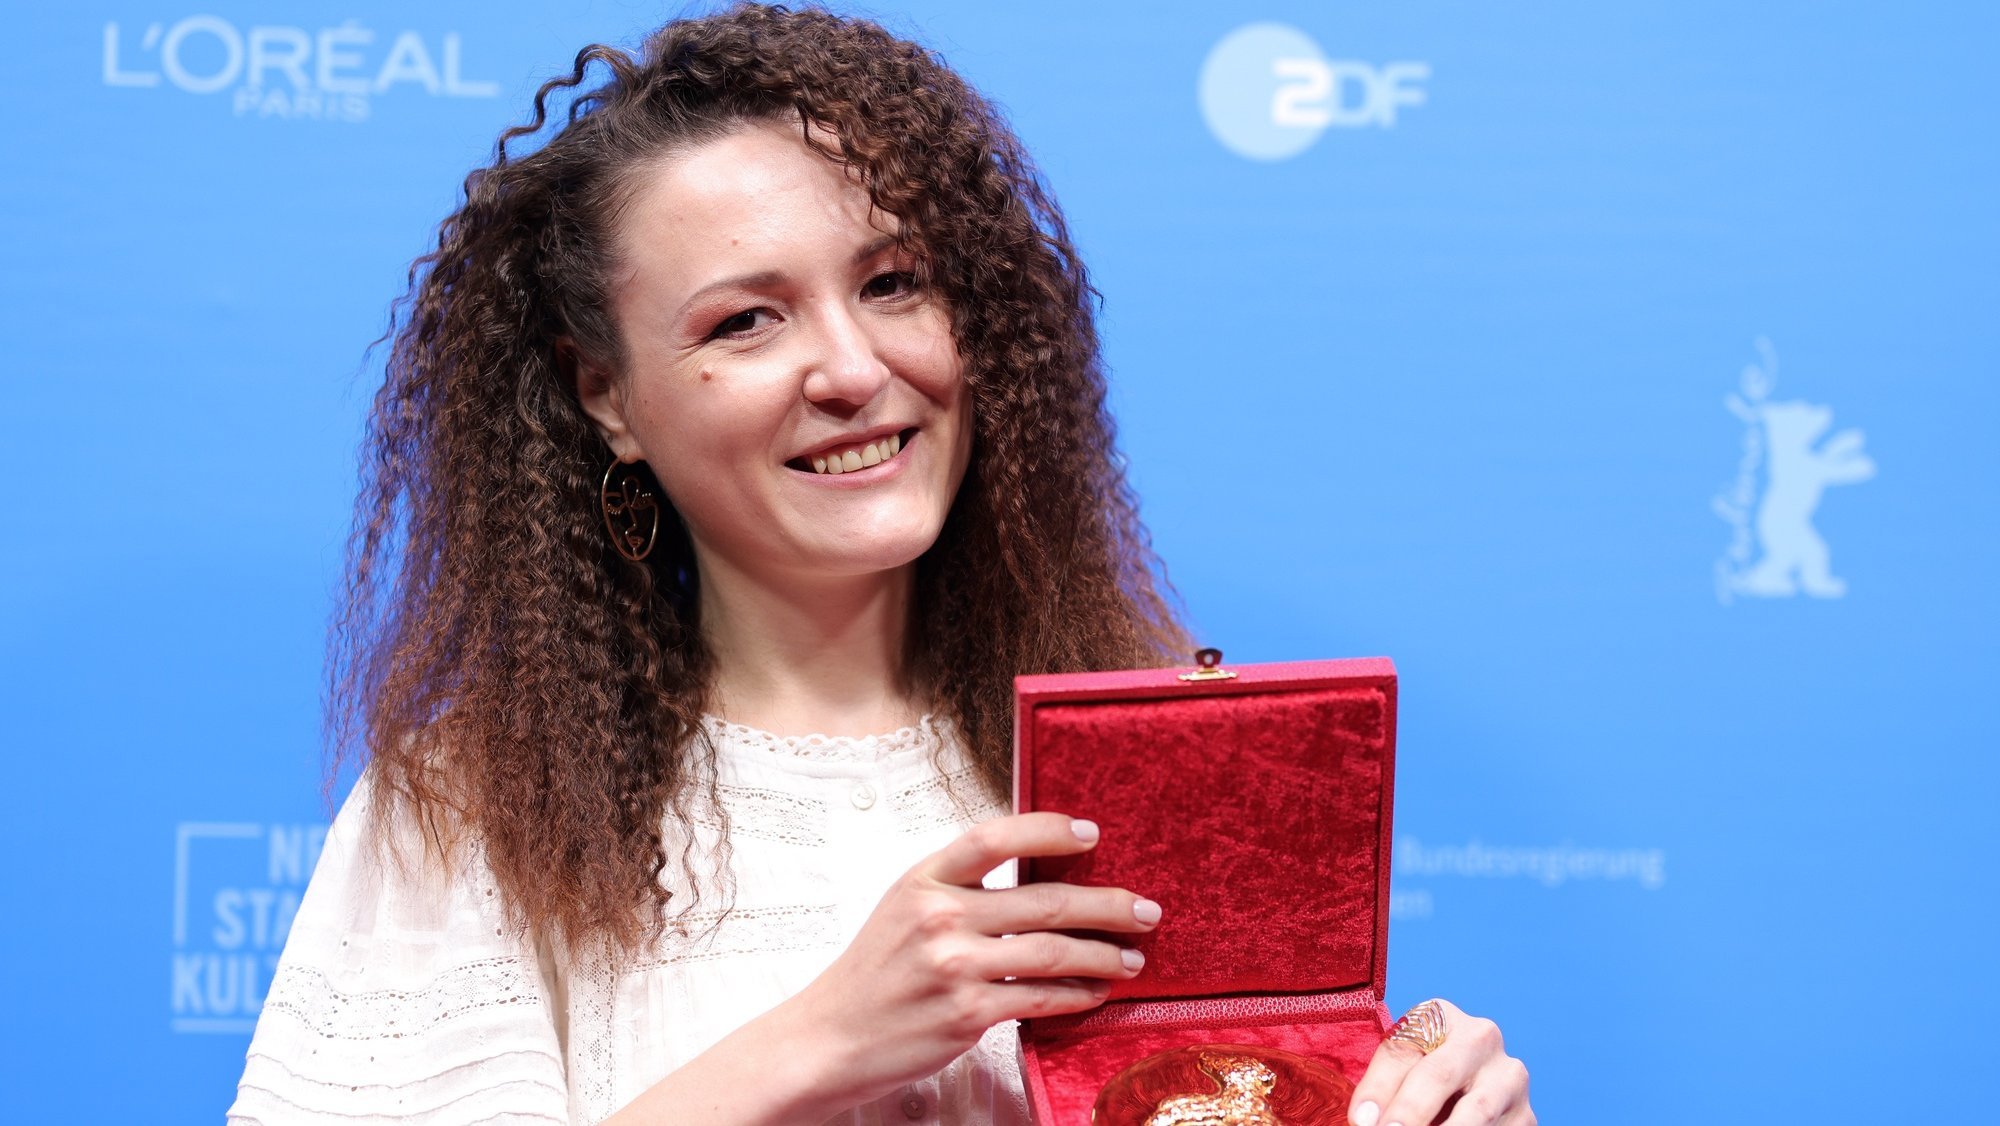 epa09269097 Olga Lucovnicova, winner of the Golden Bear for the Best Short Film for their movie 'Nanu Tudor' (My Uncle Tudor) poses with their trophy during a photocall after the awarding ceremony of the 71st Berlinale International Film Festival Summer Special in Berlin, Germany, 13 June 2021. Due to the coronavirus COVID-19 pandemic, the 71st Berlinale is taking place in two stages: a virtual Industry Event, that was held from 01 to 05 March 2021, and the Summer Special for the general public running from 09 to 20 June 2021 as an outdoor-only event.  EPA/ANDREAS RENTZ / POOL